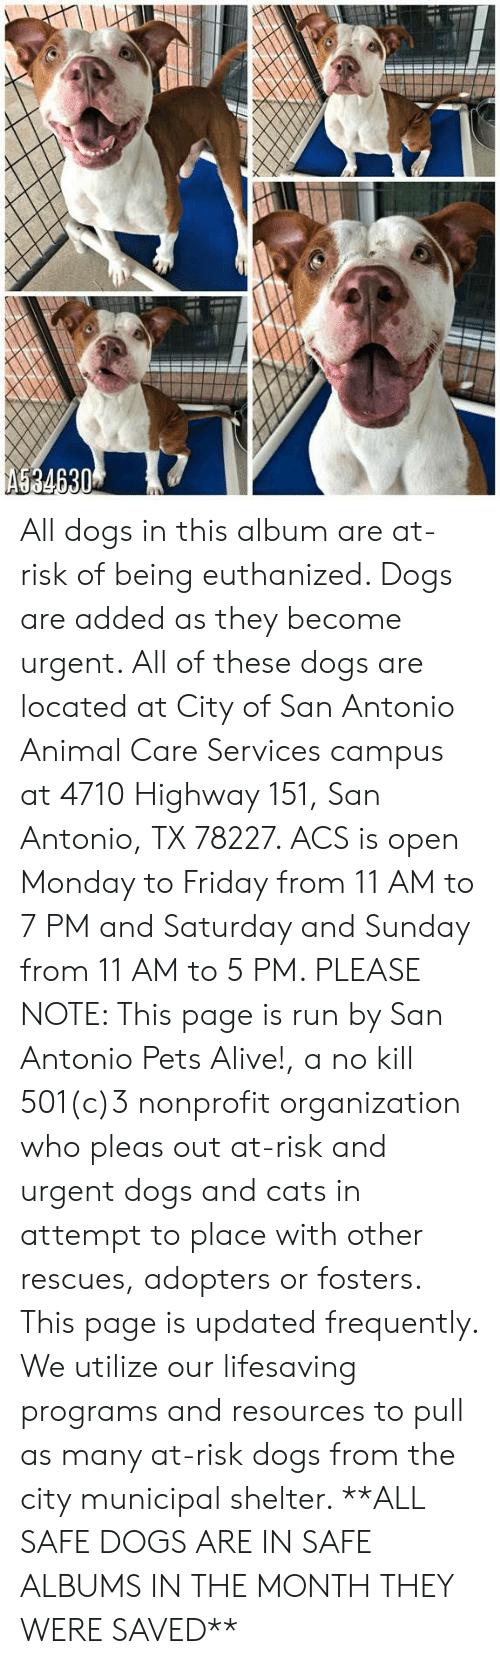 Alive, Cats, and Dogs: AS34630 All dogs in this album are at-risk of being euthanized.  Dogs are added as they become urgent.  All of these dogs are located at City of San Antonio Animal Care Services campus at 4710 Highway 151, San Antonio, TX 78227. ACS is open Monday to Friday from 11 AM to 7 PM and Saturday and Sunday from 11 AM to 5 PM.   PLEASE NOTE: This page is run by San Antonio Pets Alive!, a no kill 501(c)3 nonprofit organization who pleas out at-risk and urgent dogs and cats in attempt to place with other rescues, adopters or fosters.   This page is updated frequently.  We utilize our lifesaving programs and resources to pull as many at-risk dogs from the city municipal shelter. **ALL SAFE DOGS ARE IN SAFE ALBUMS IN THE MONTH THEY WERE SAVED**